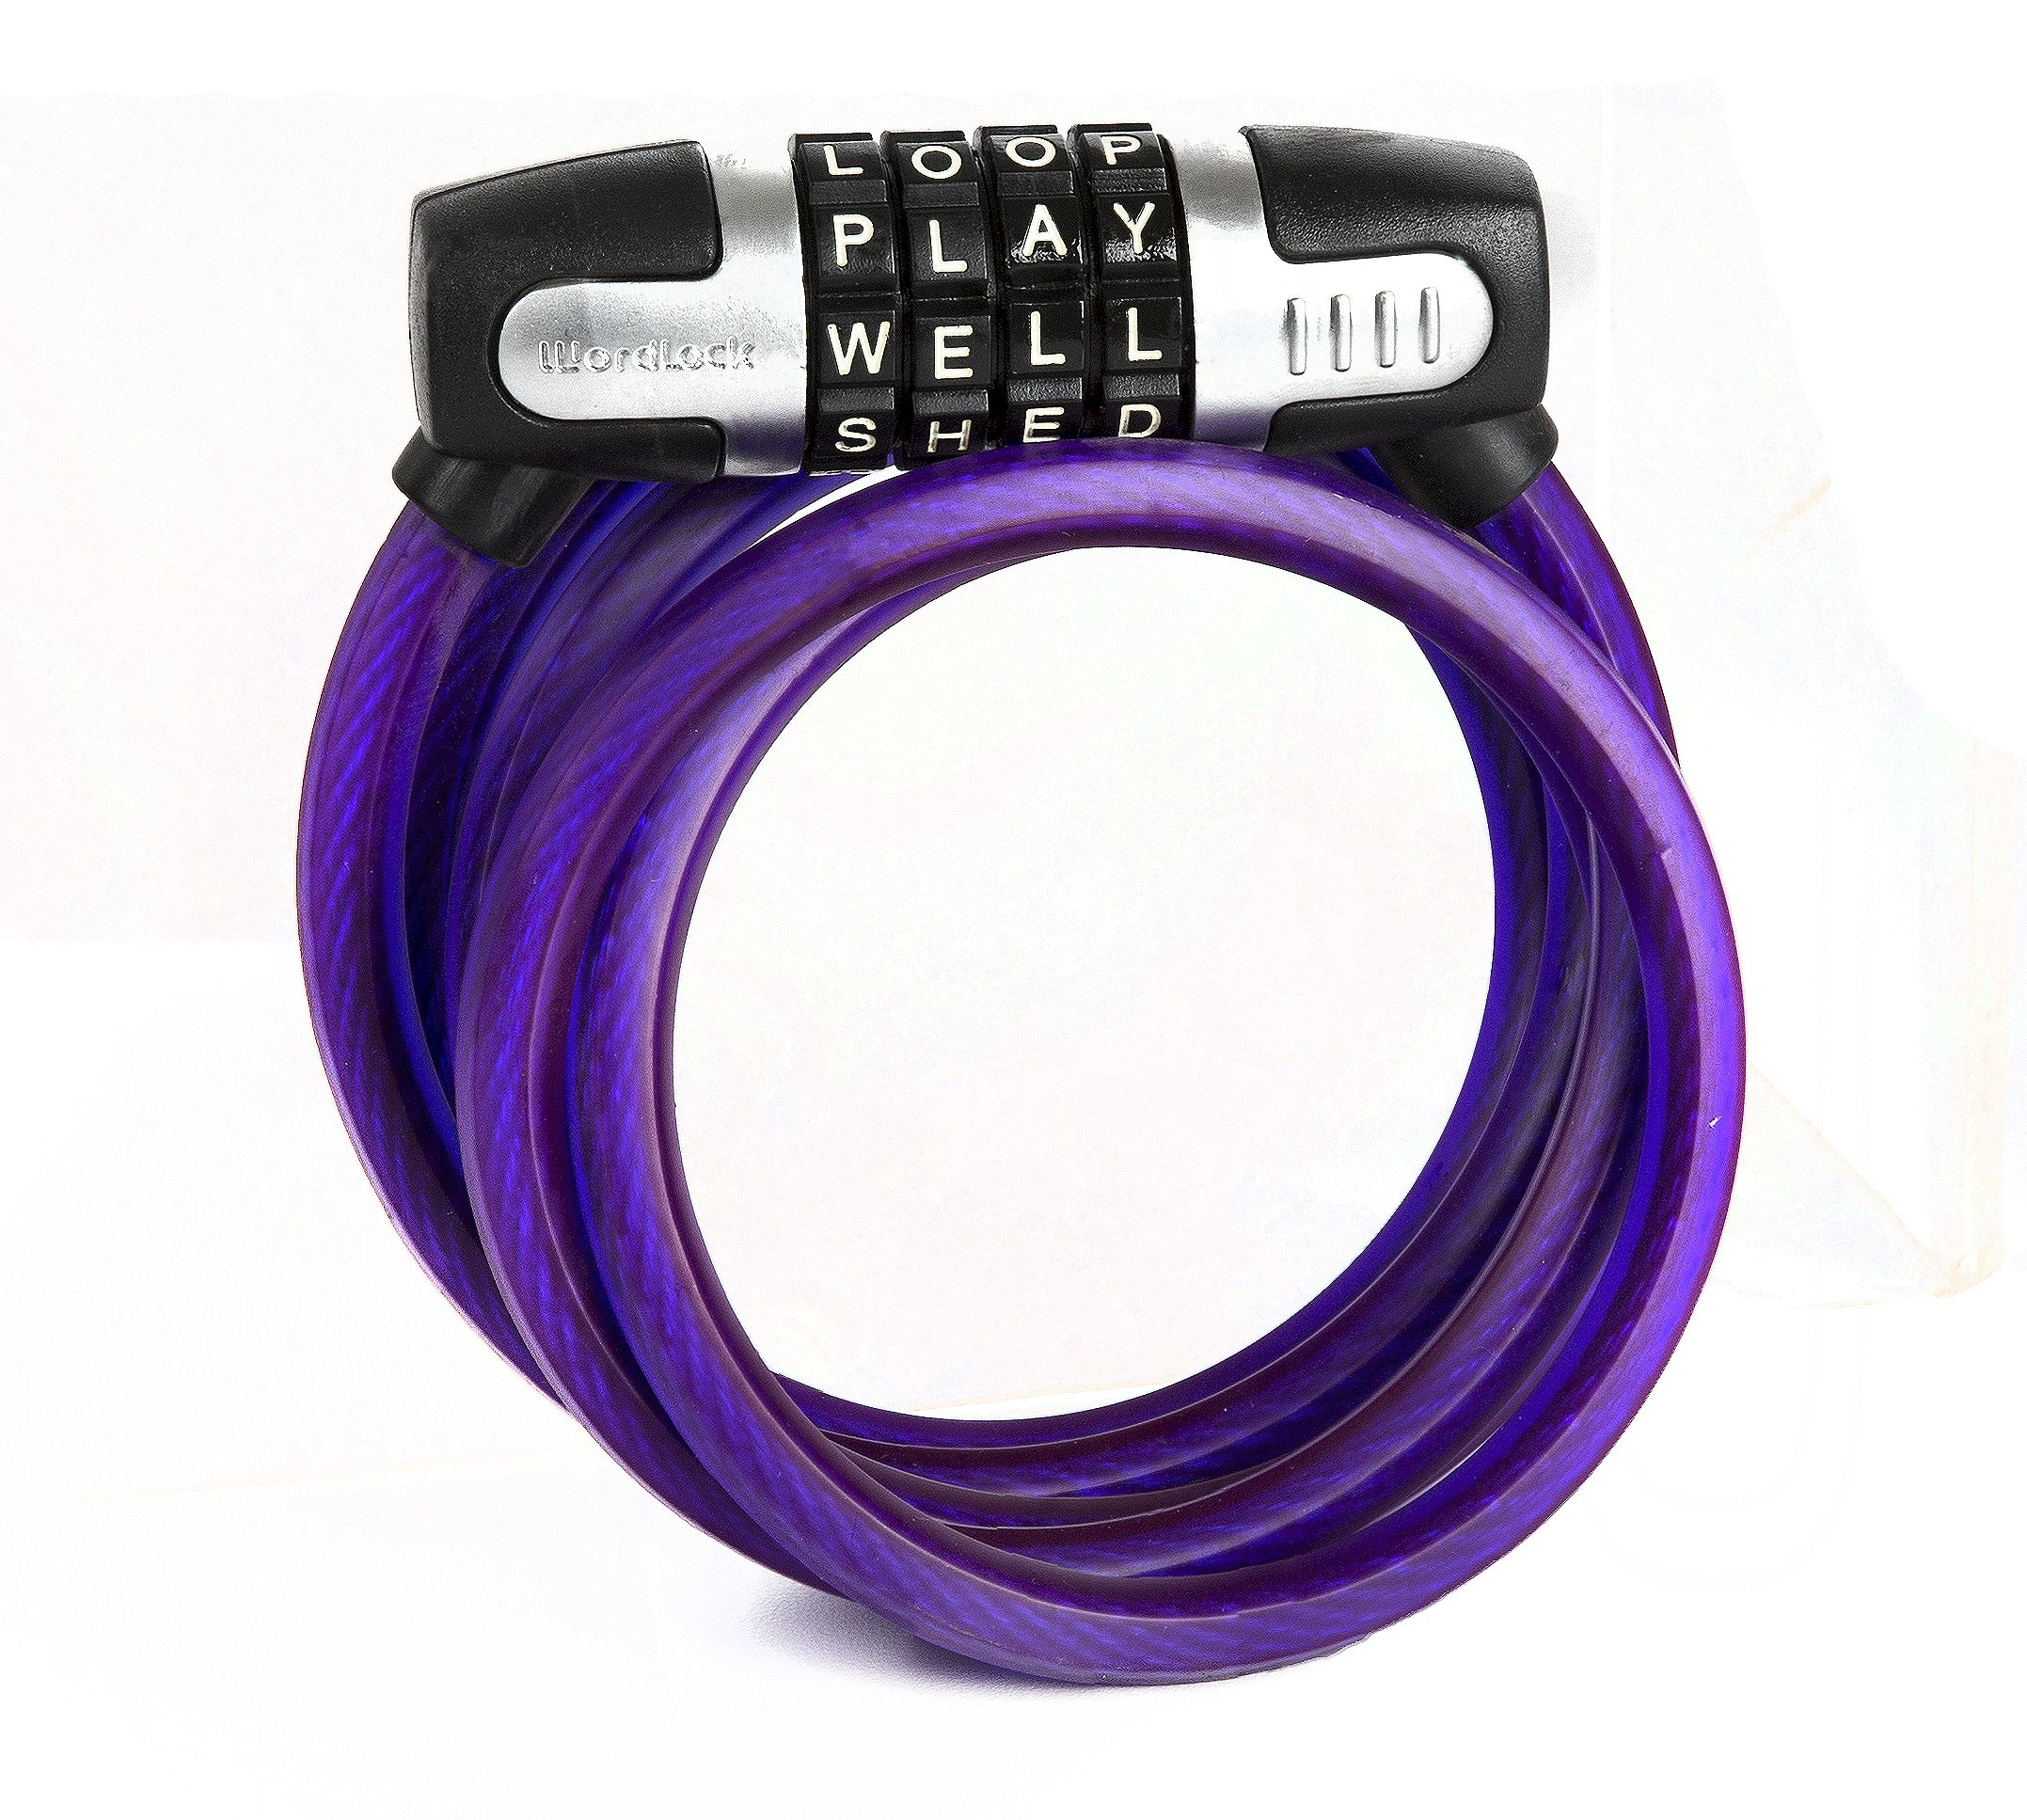 Wordlock Combination Bike Lock – 5 Feet, 4 Dial, Purple